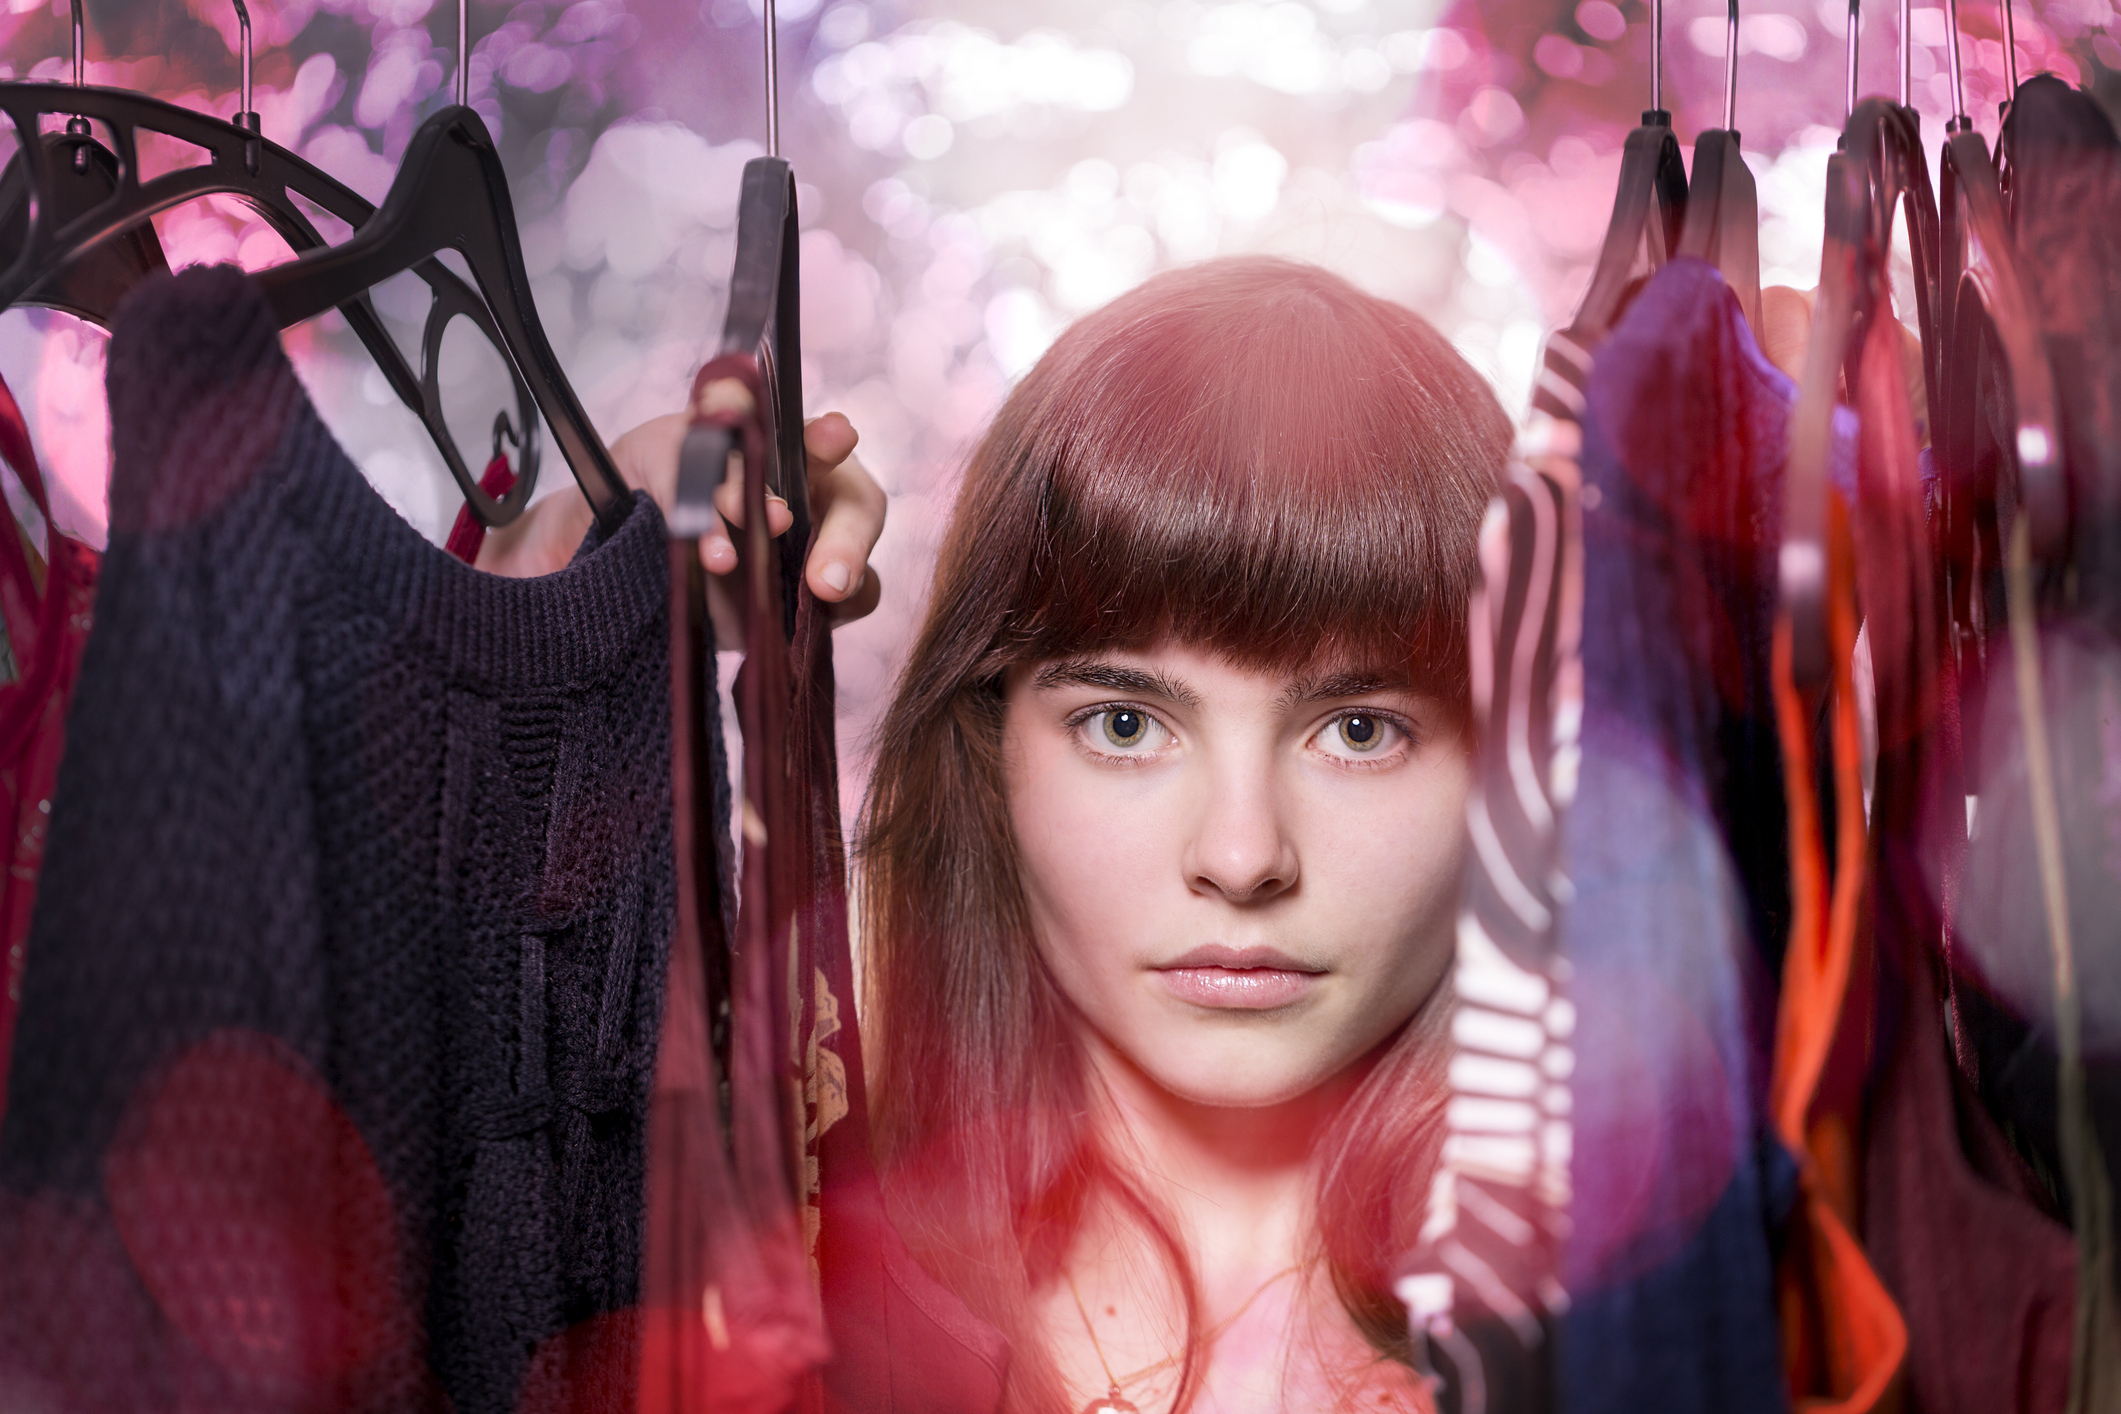 A girl looks through her wardrobe of clothes (Thinkstock/PA)